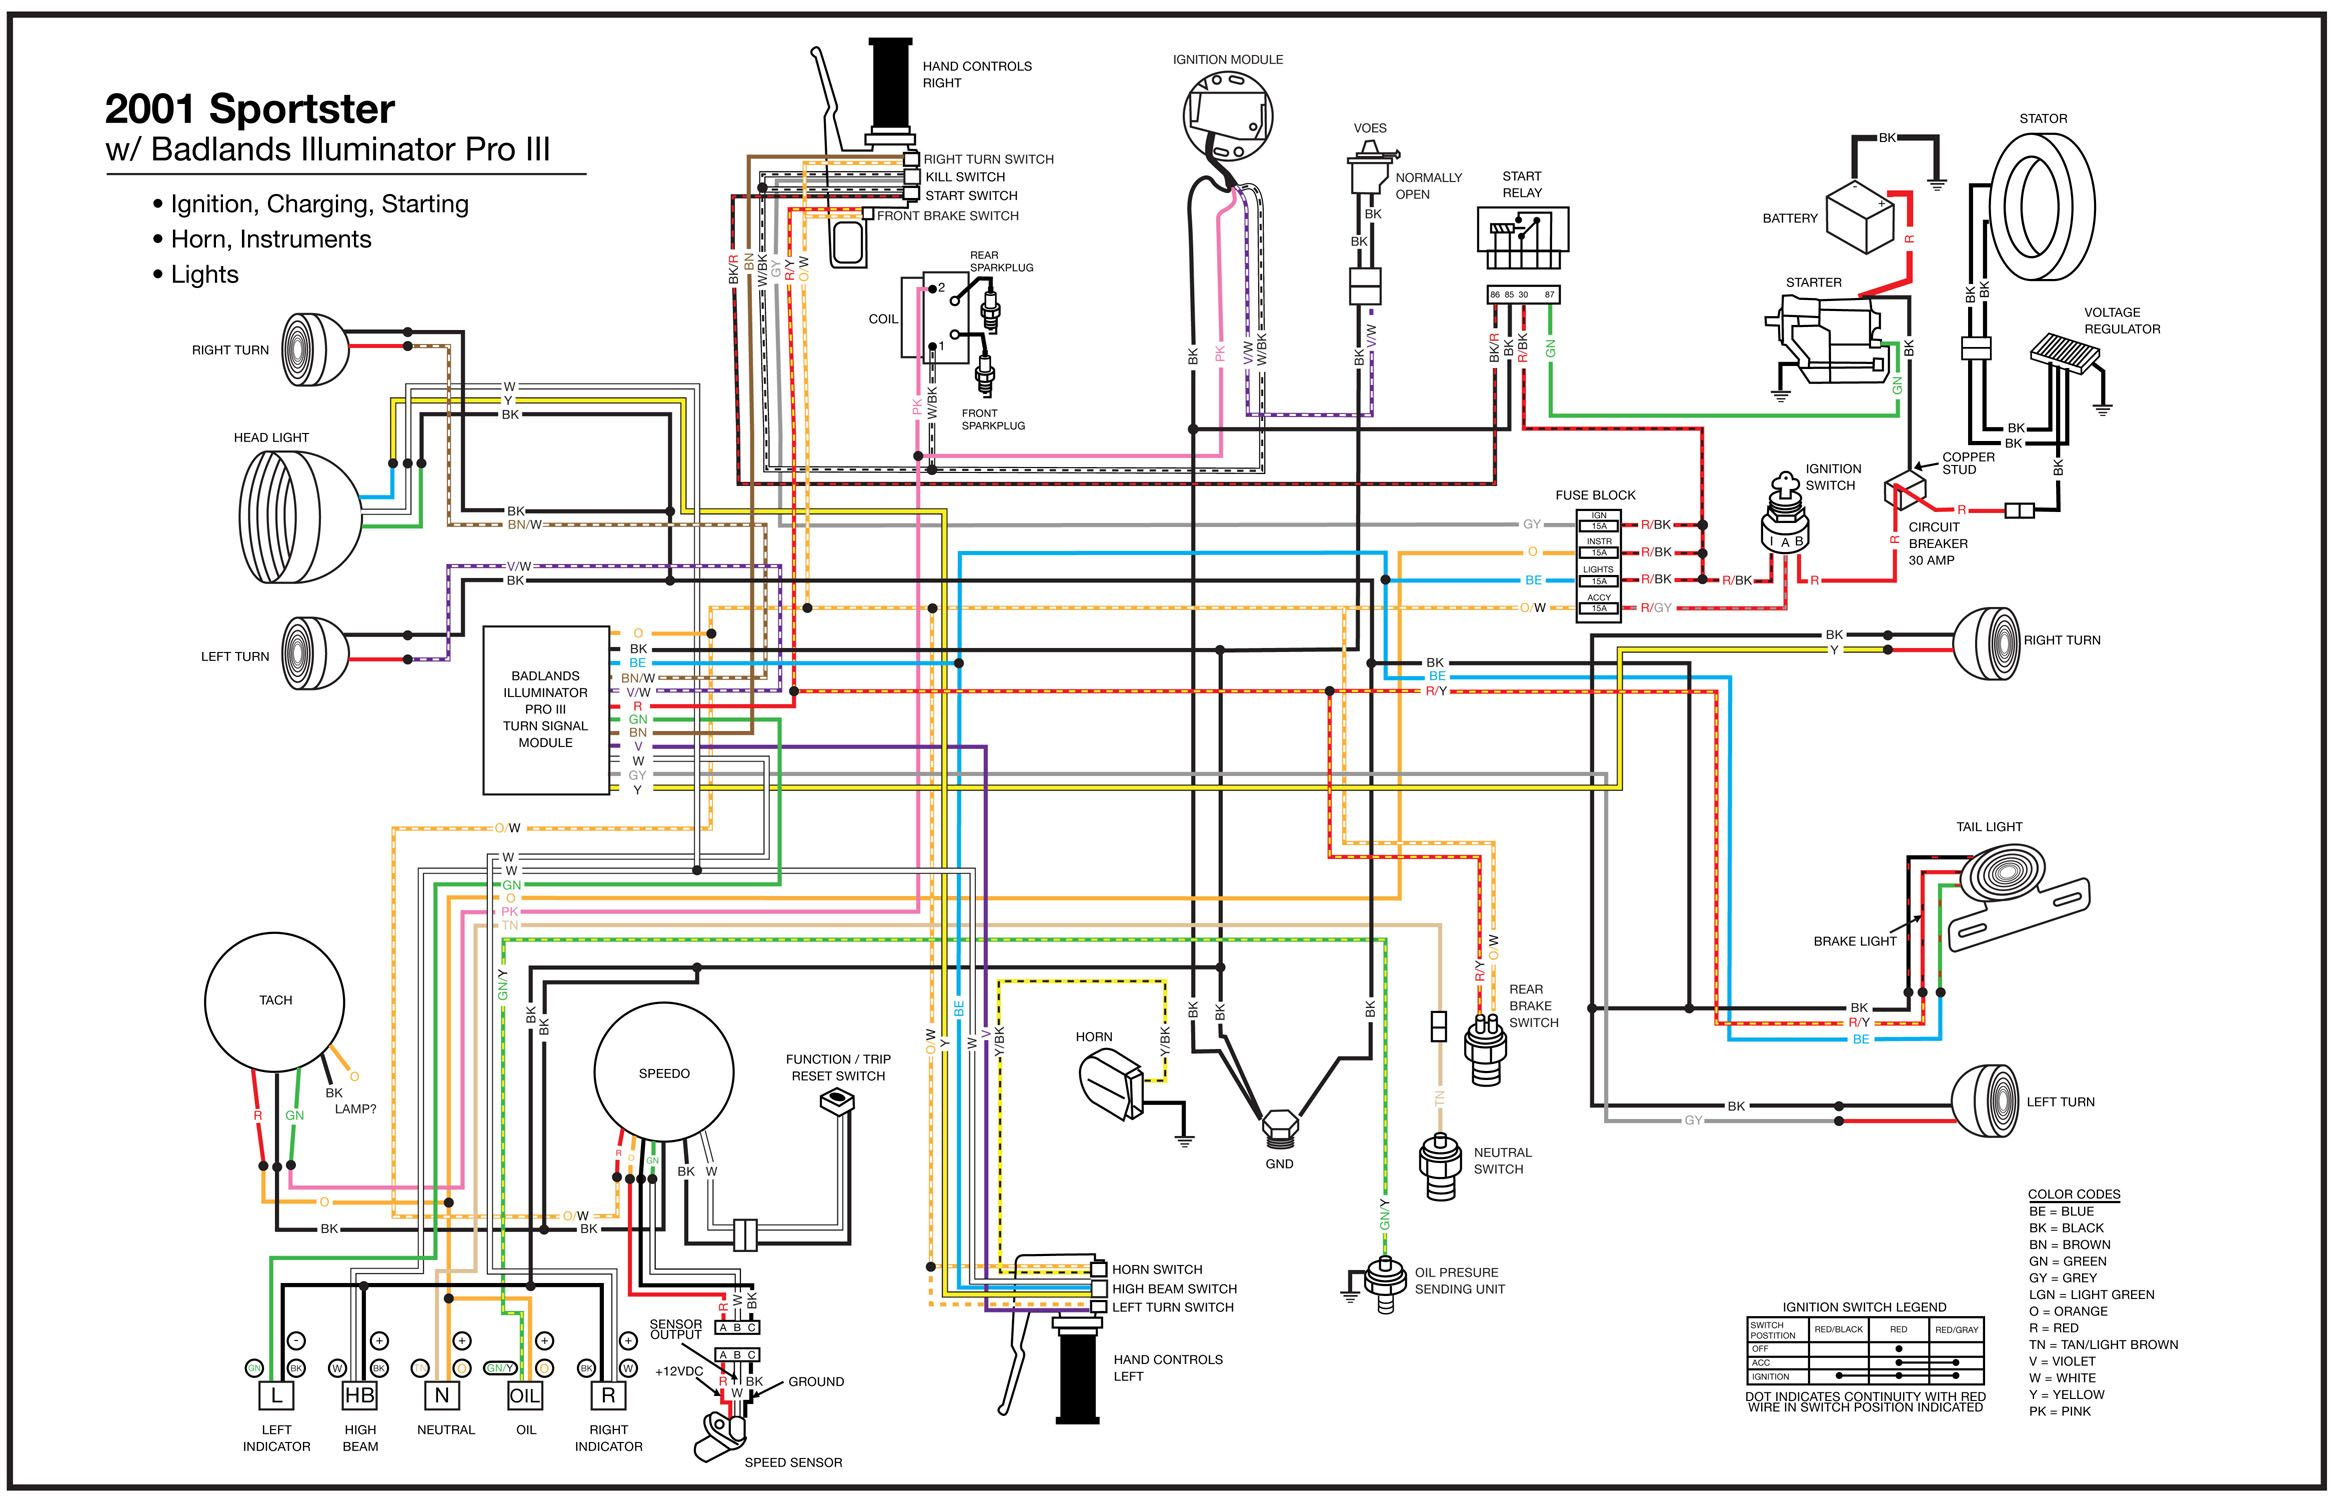 Fender Cyclone Wiring Nice Place To Get Diagram Ii Data Rh 19 13 4 Mercedes Aktion Tesmer De Toronado